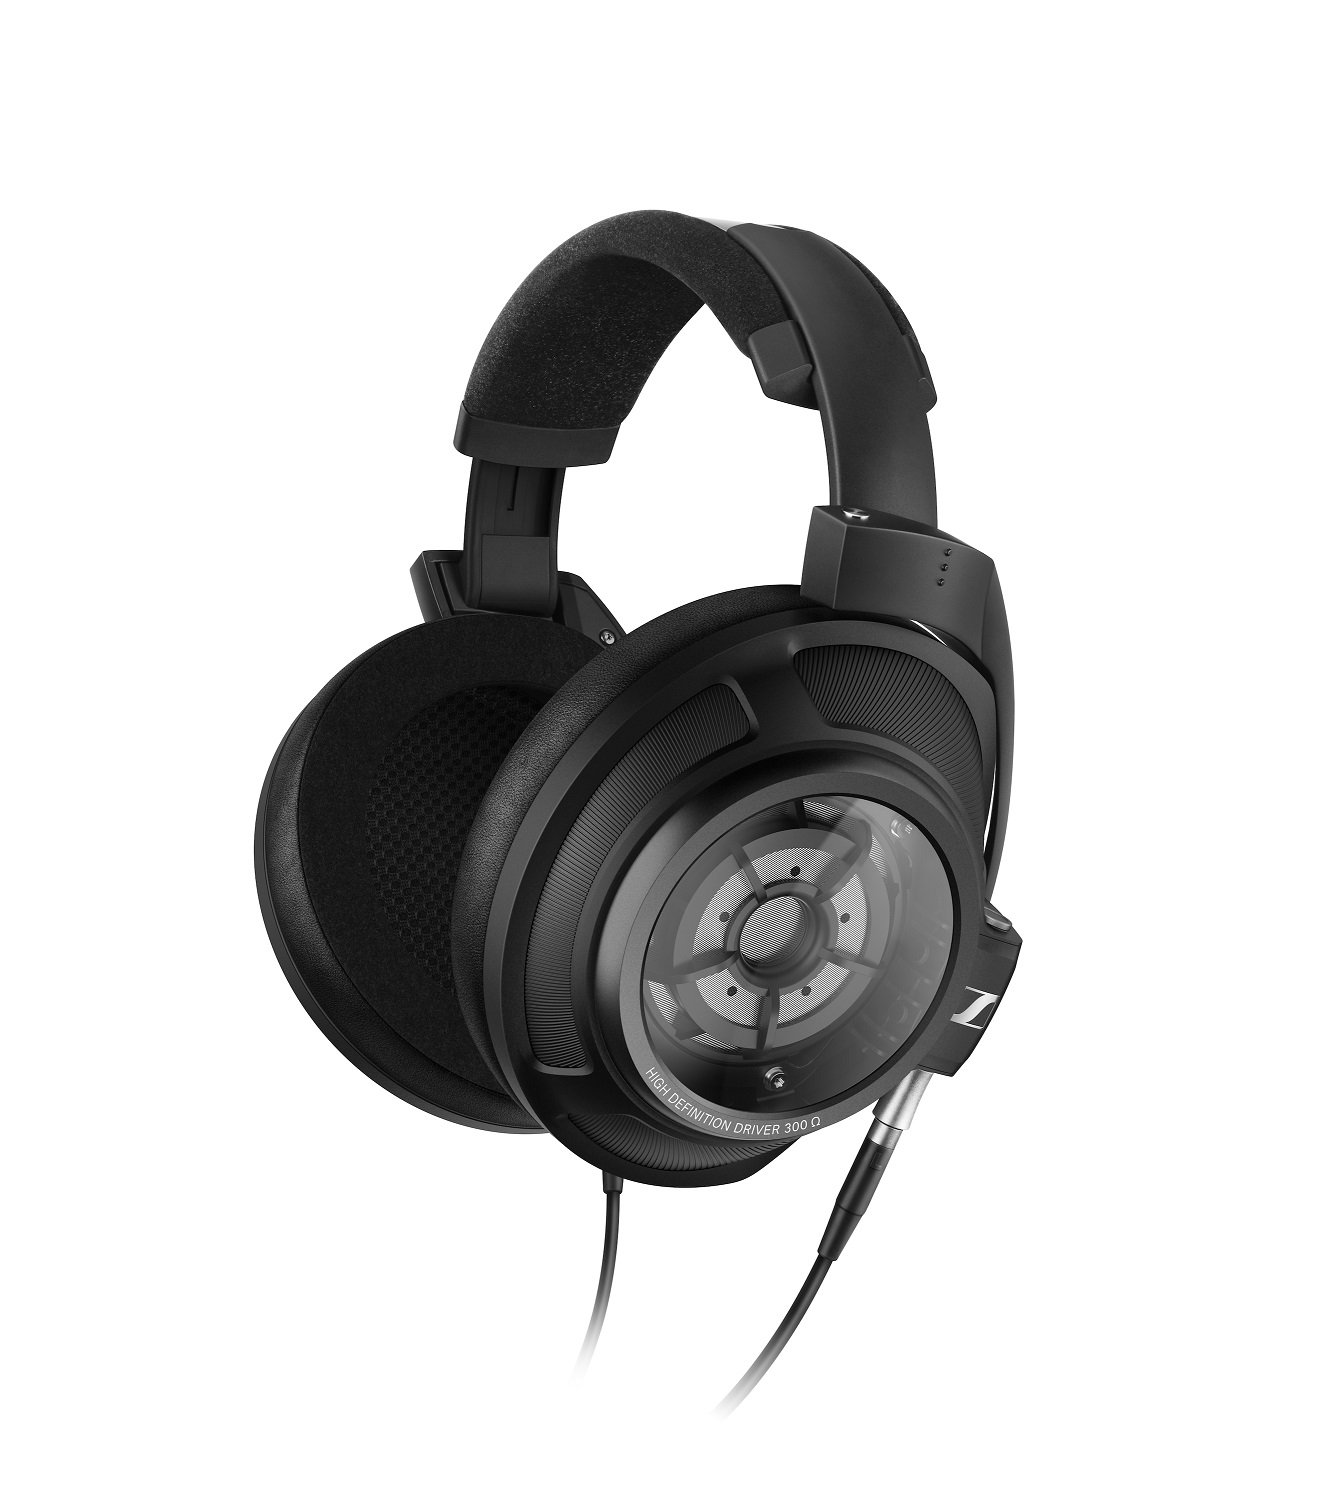 Sennheiser announce new headphones at CES 2018